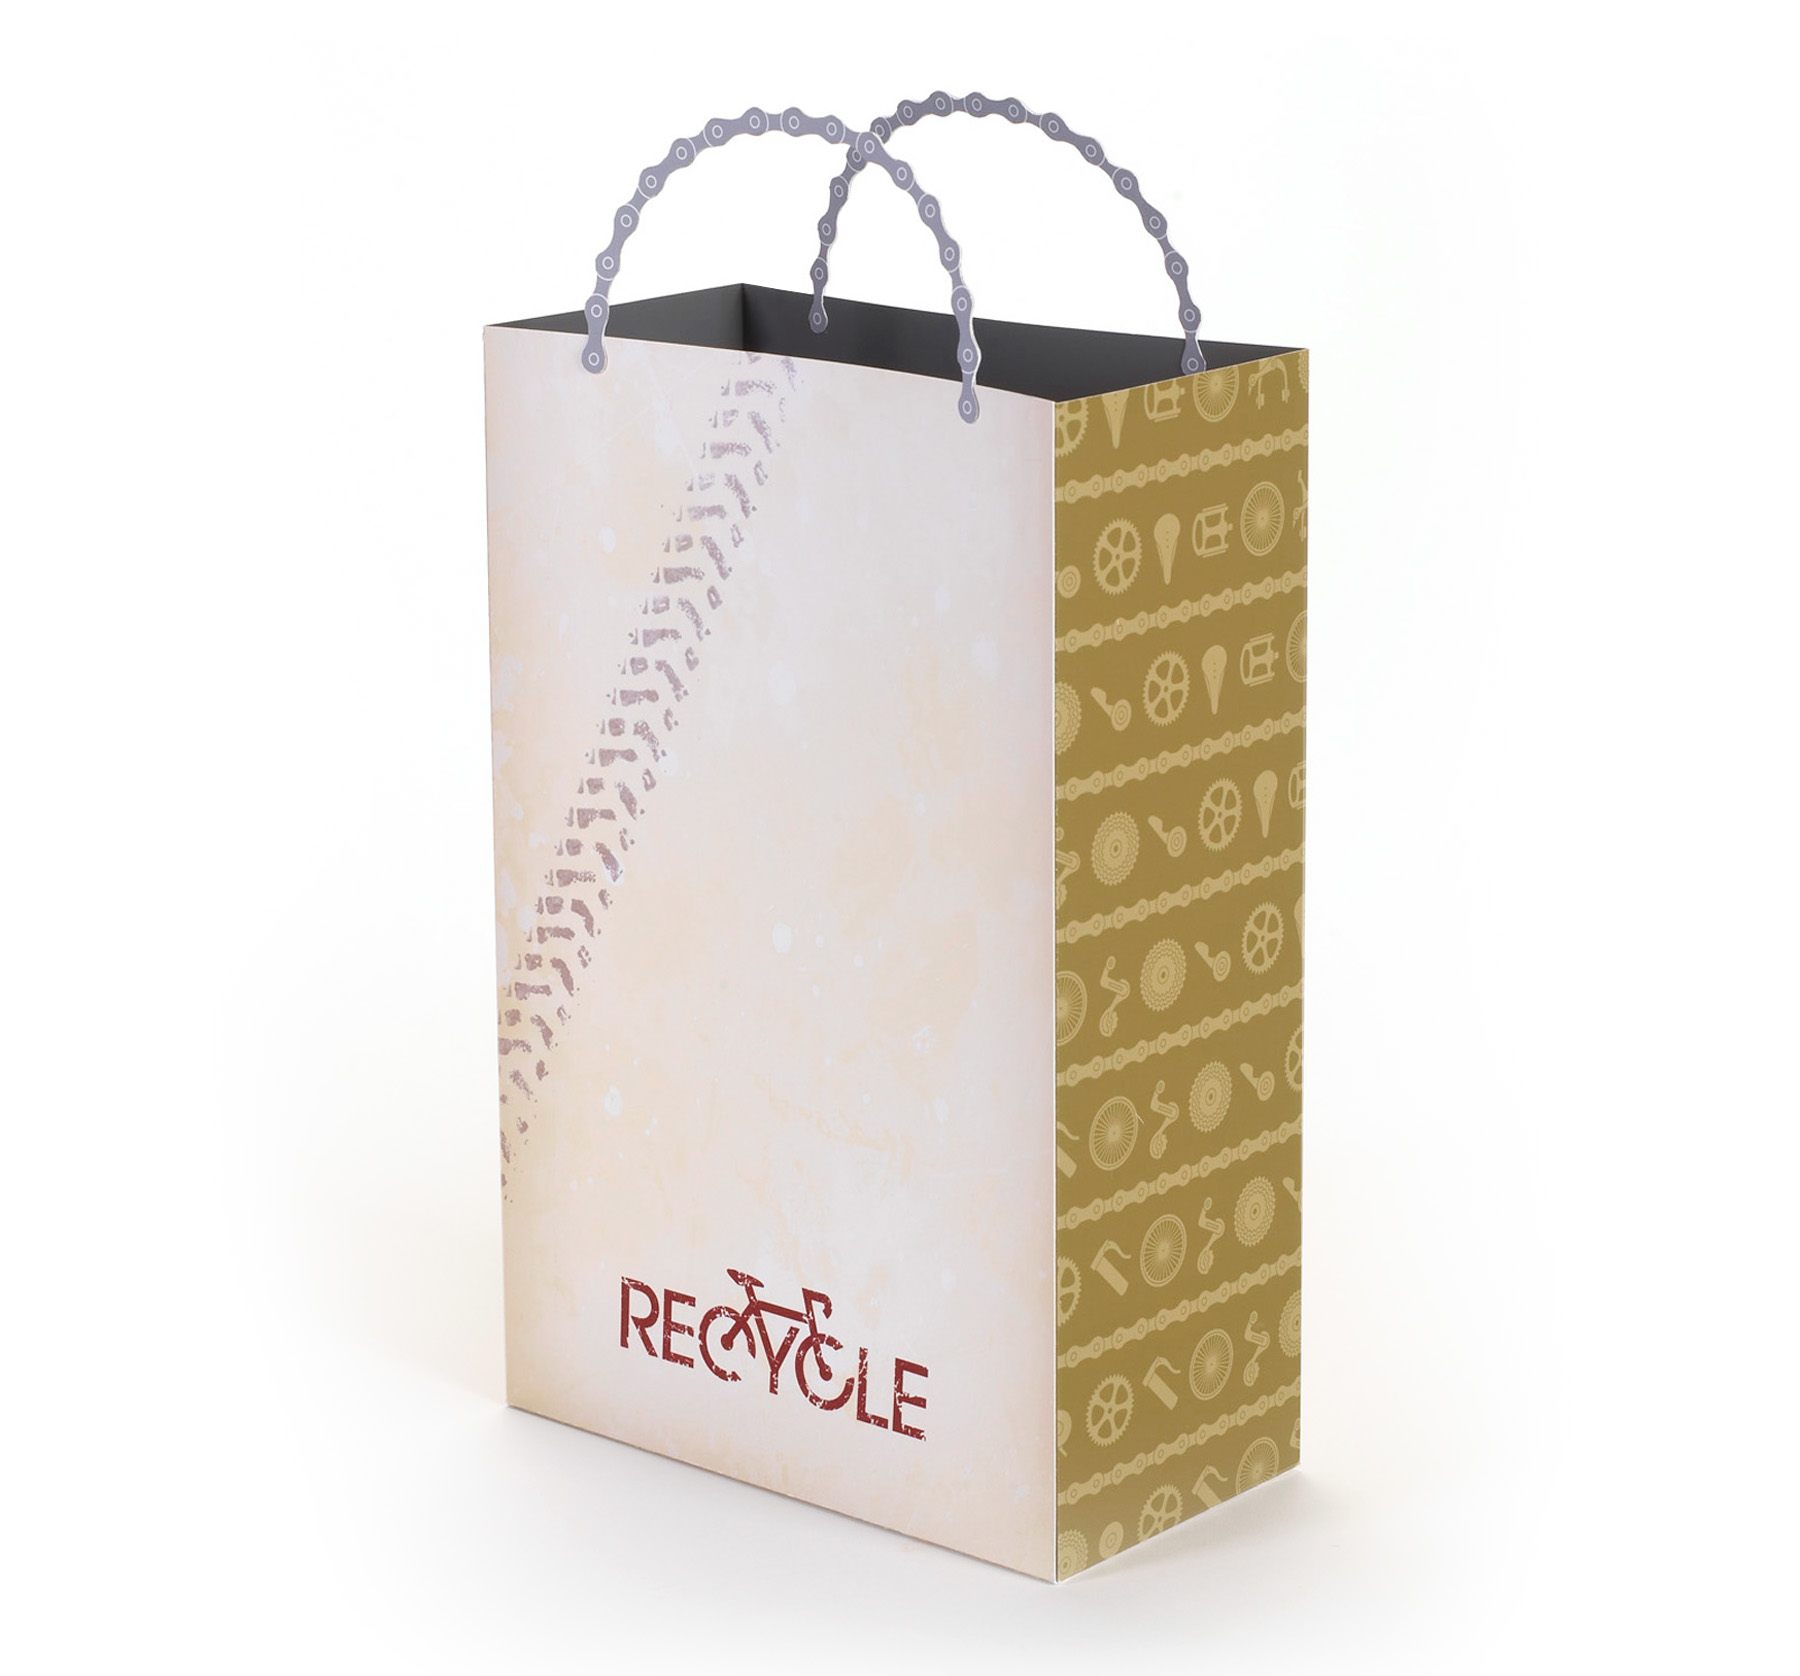 Recycle_bag.jpg